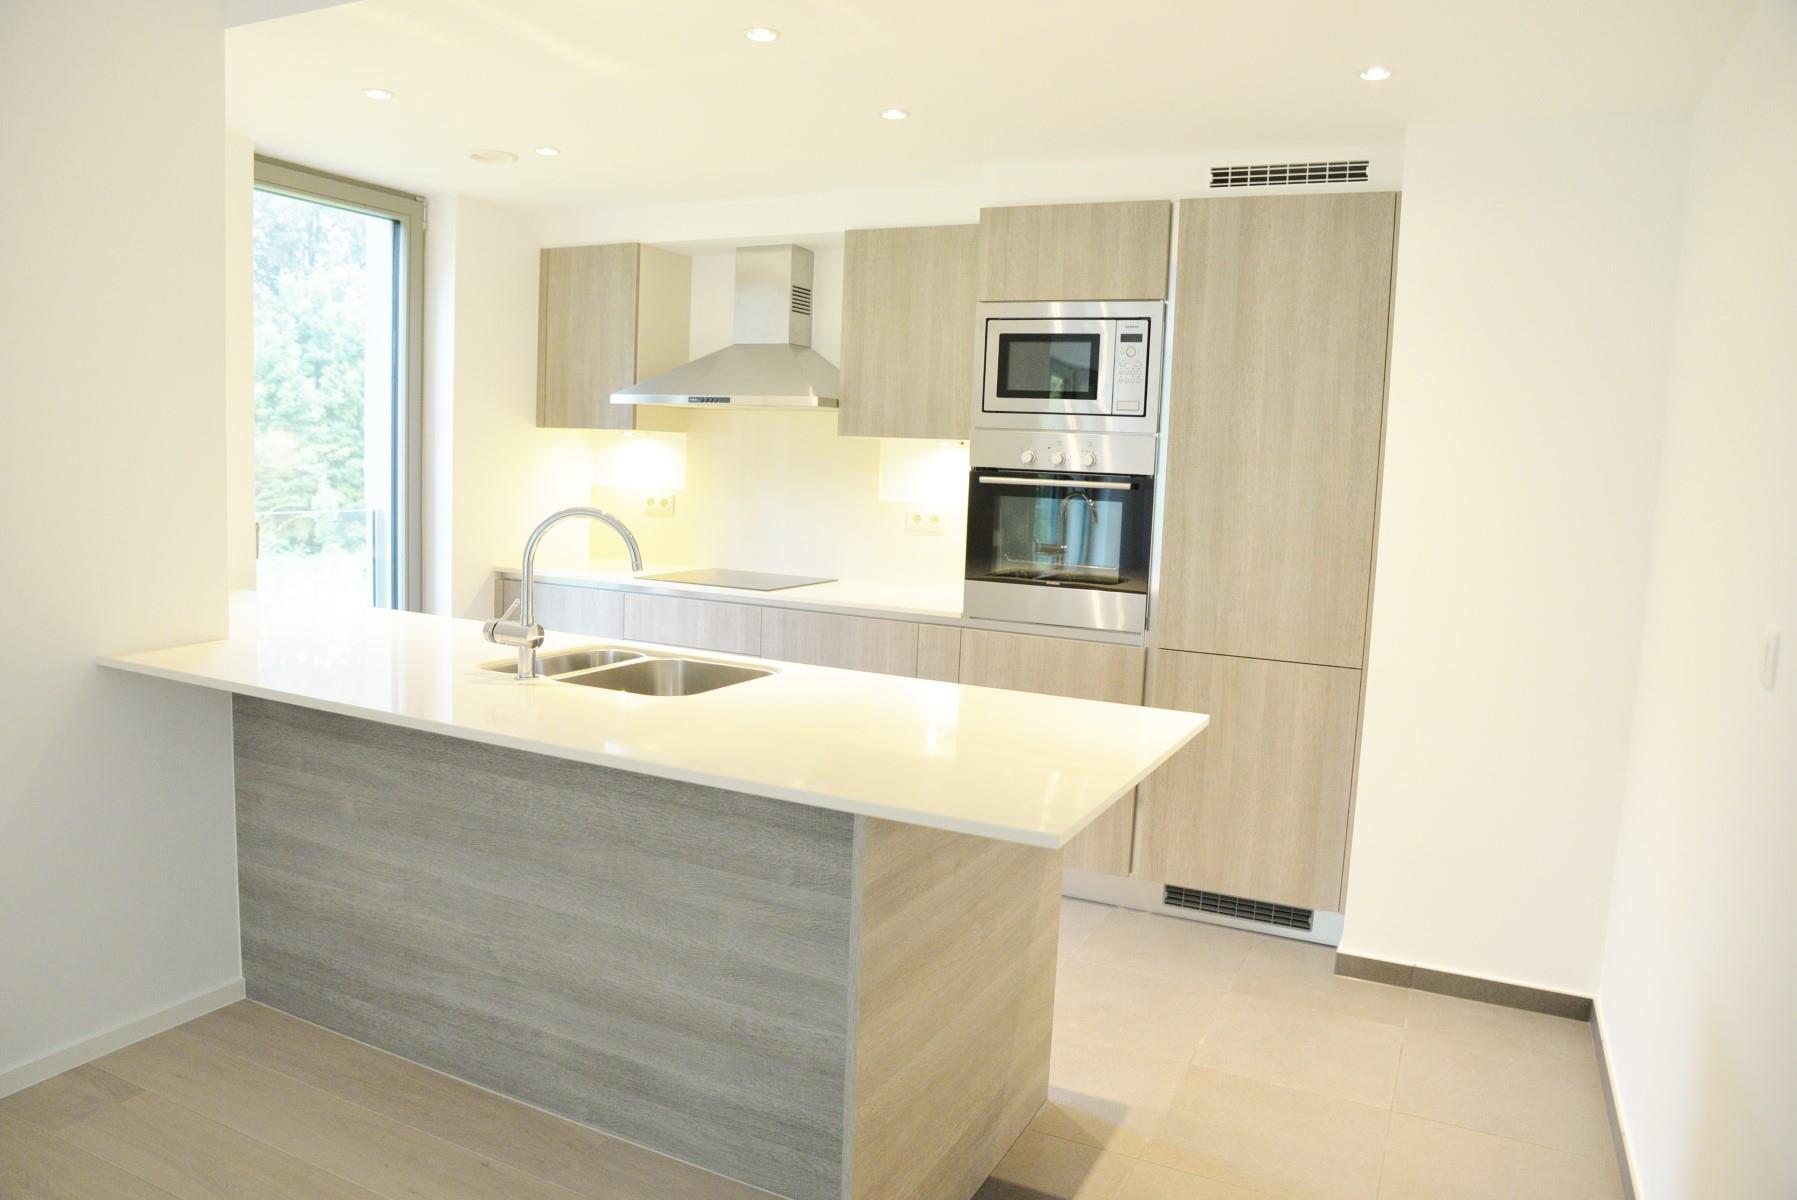 Exceptional apartment  - Uccle - #4051009-5